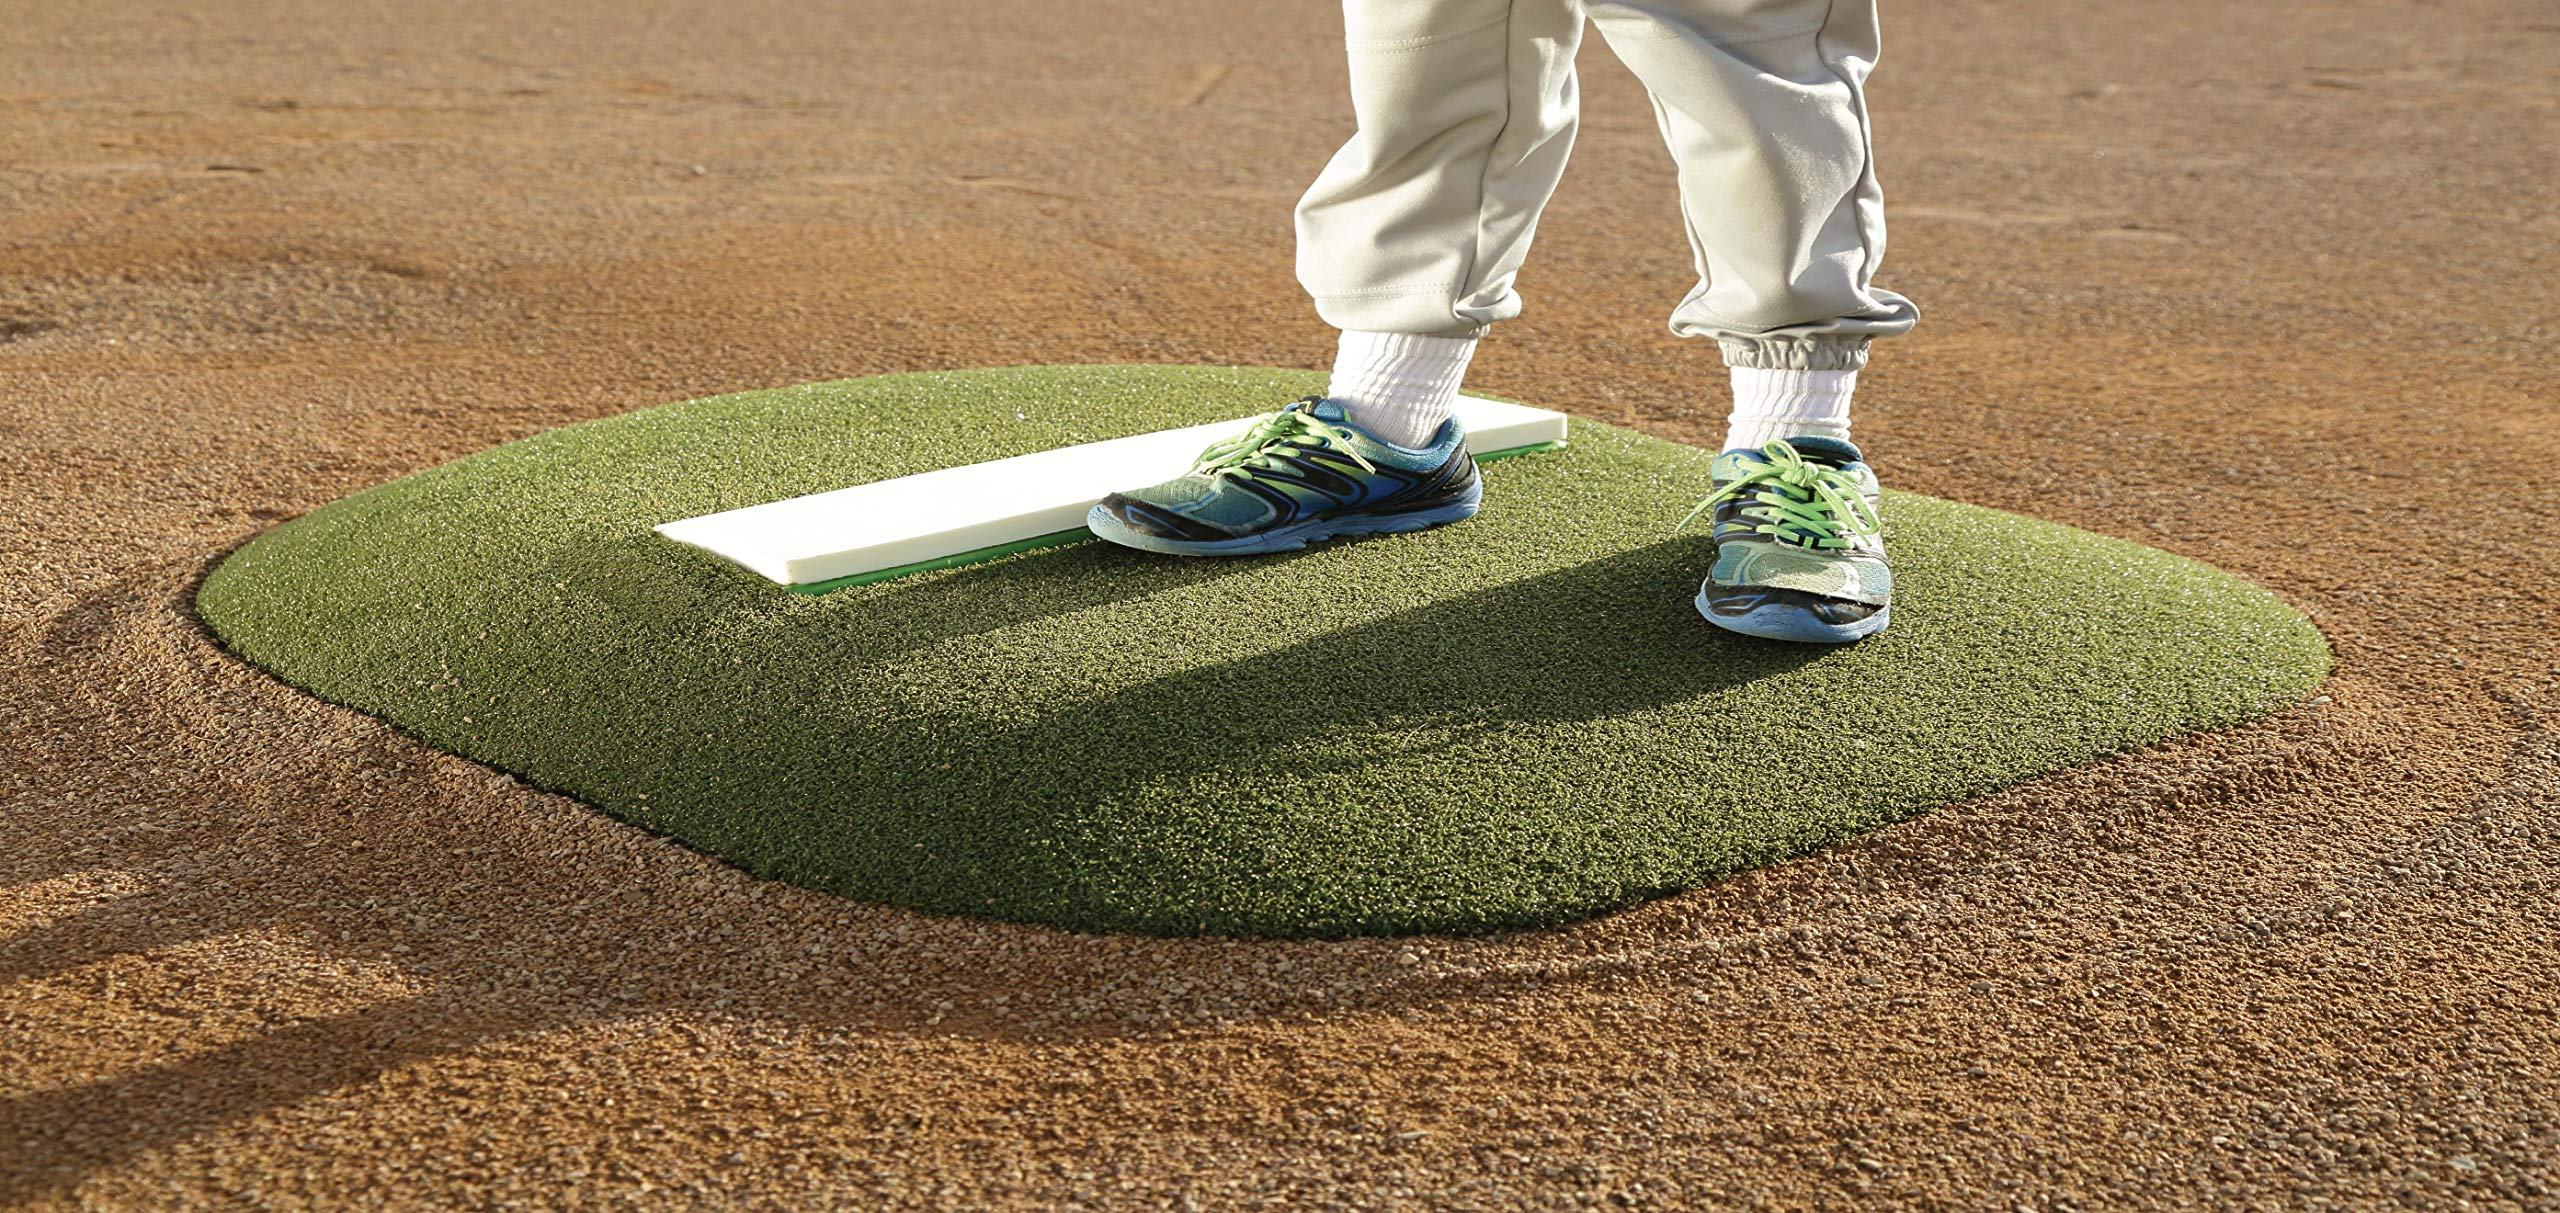 4'' Economy Portable Baseball Pitching Mound by Portolite portable pitching mounds